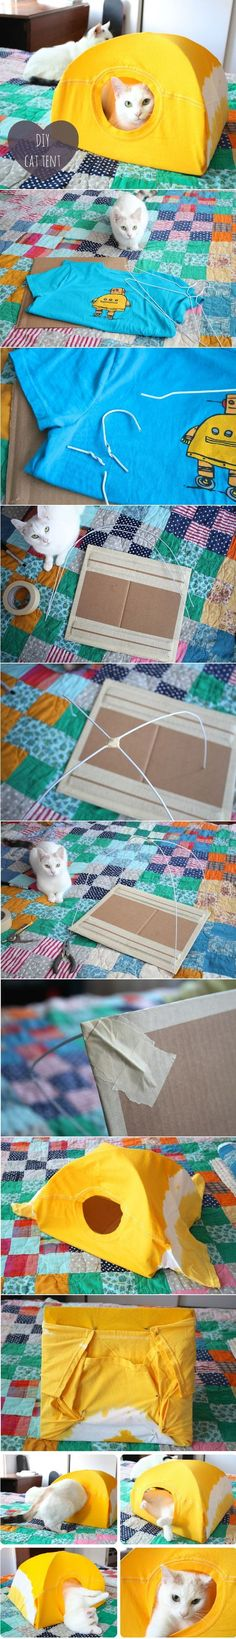 15 Super Fun DIY Cat Tent Ideas to Pursue